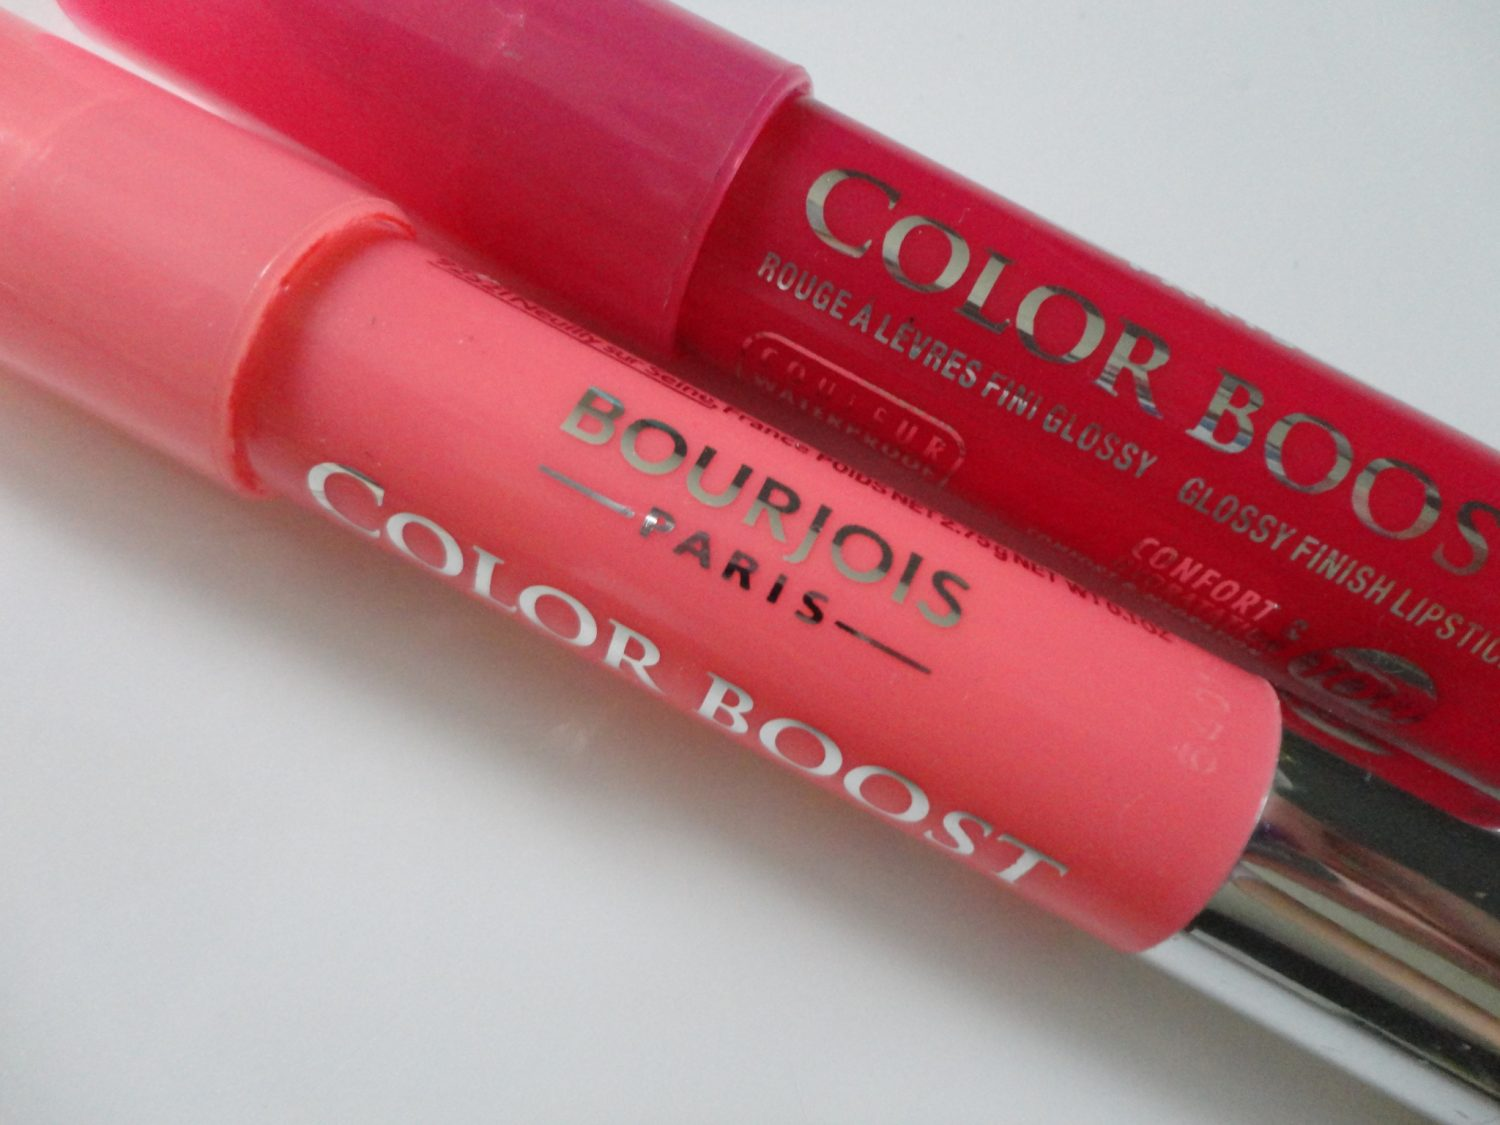 Review: Bourjois Color Boost